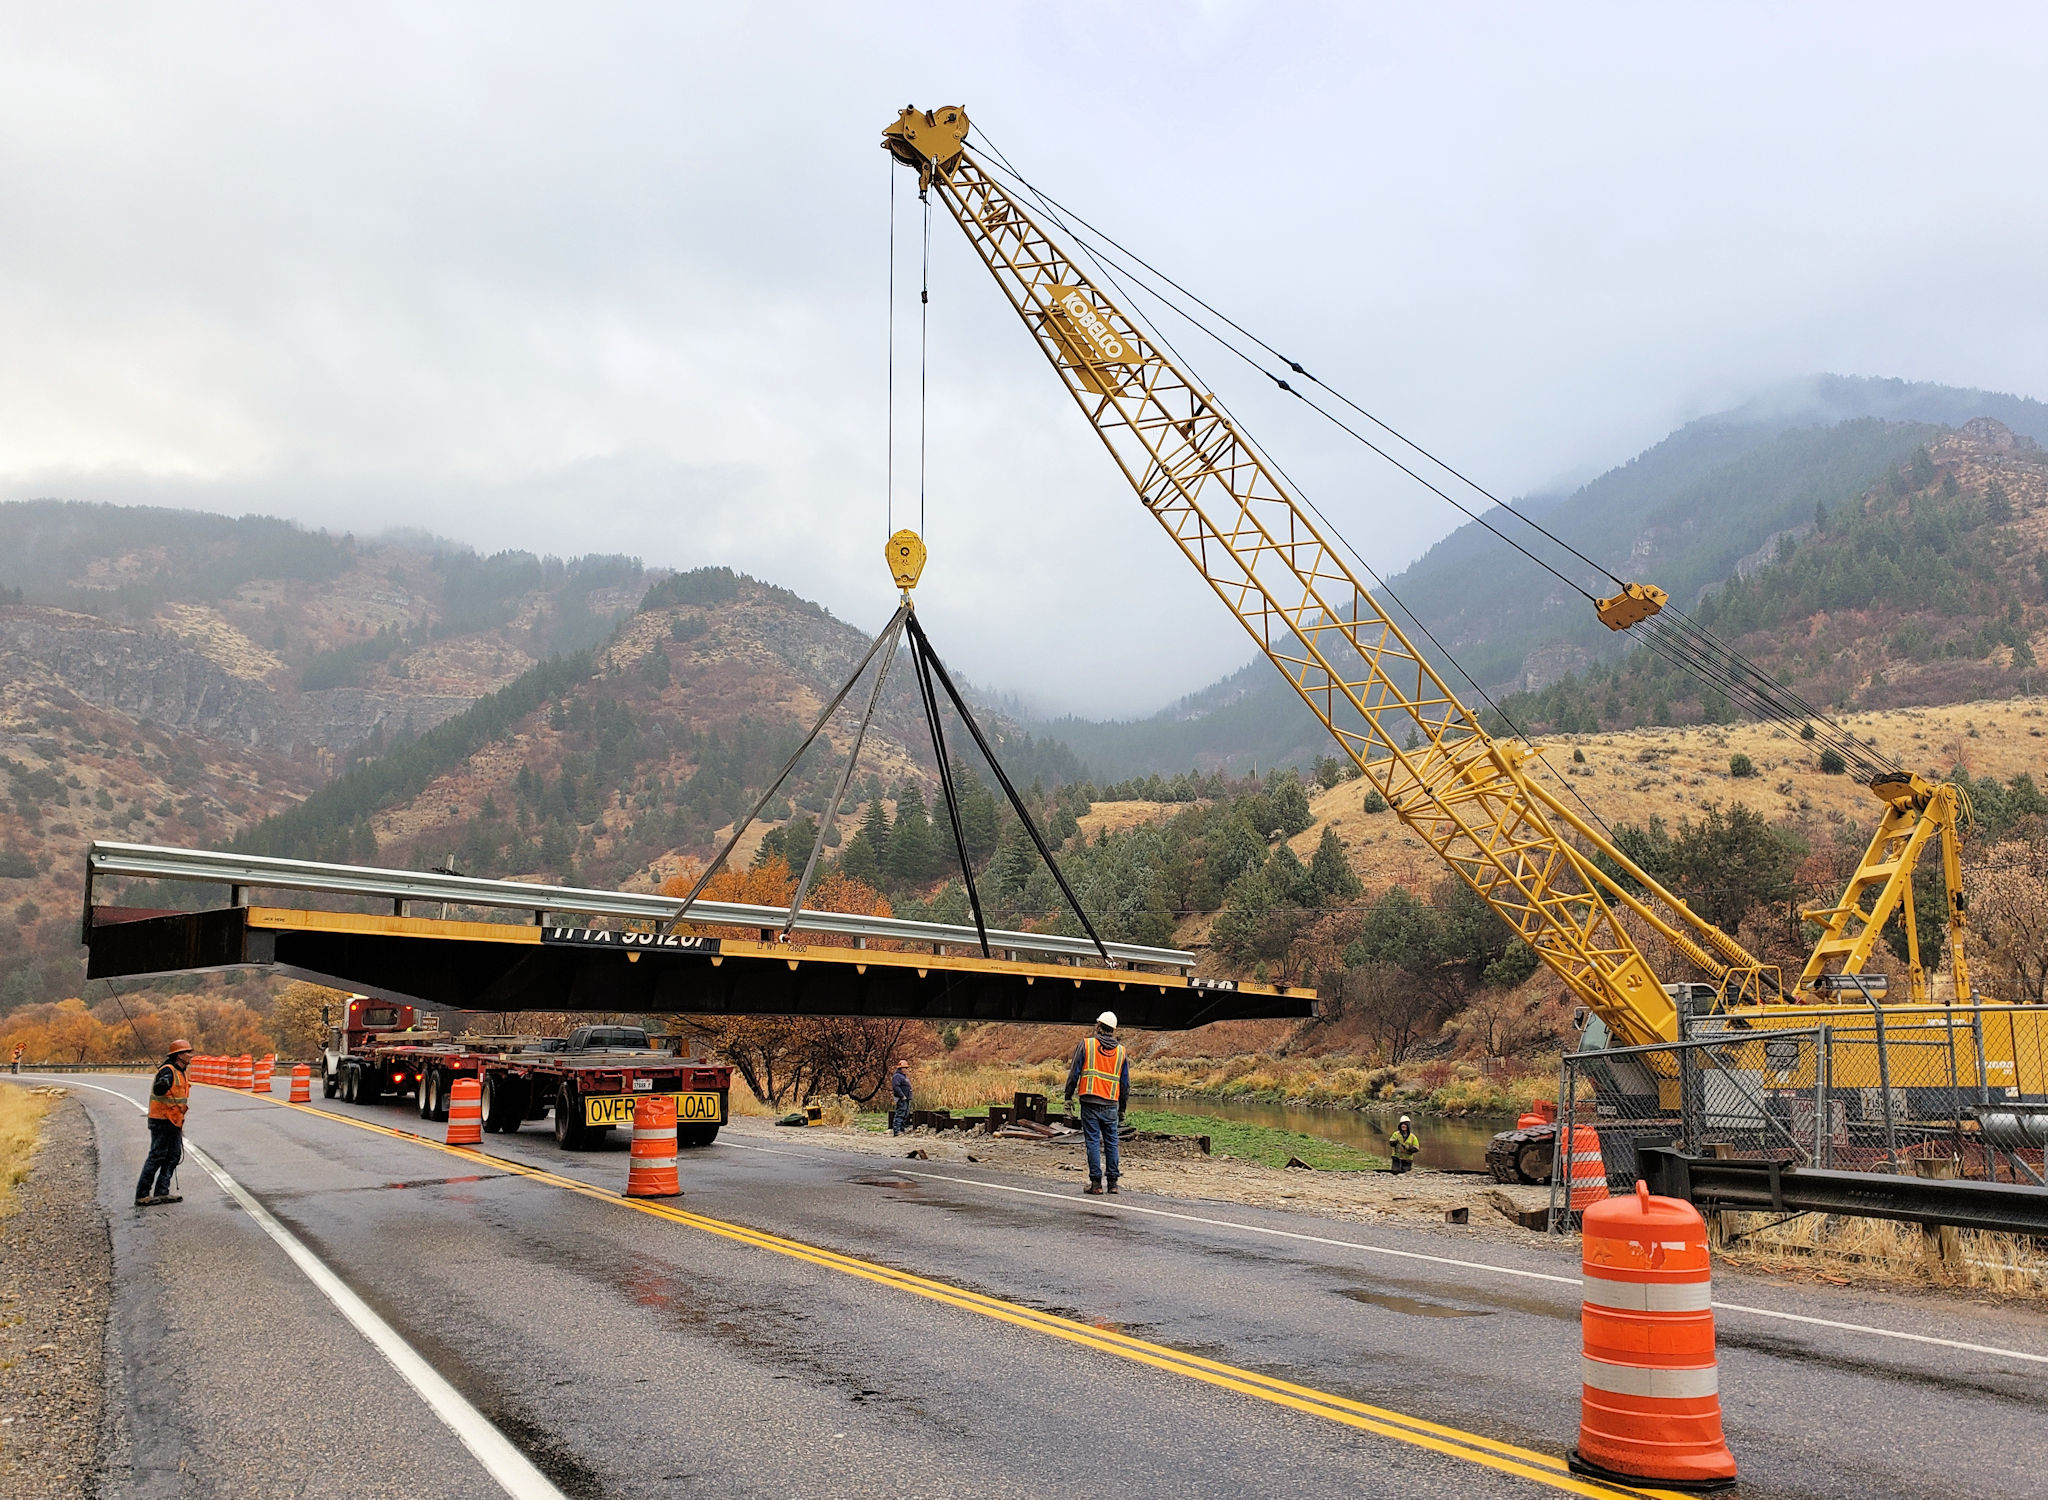 Swinging one half of the bridge into place.